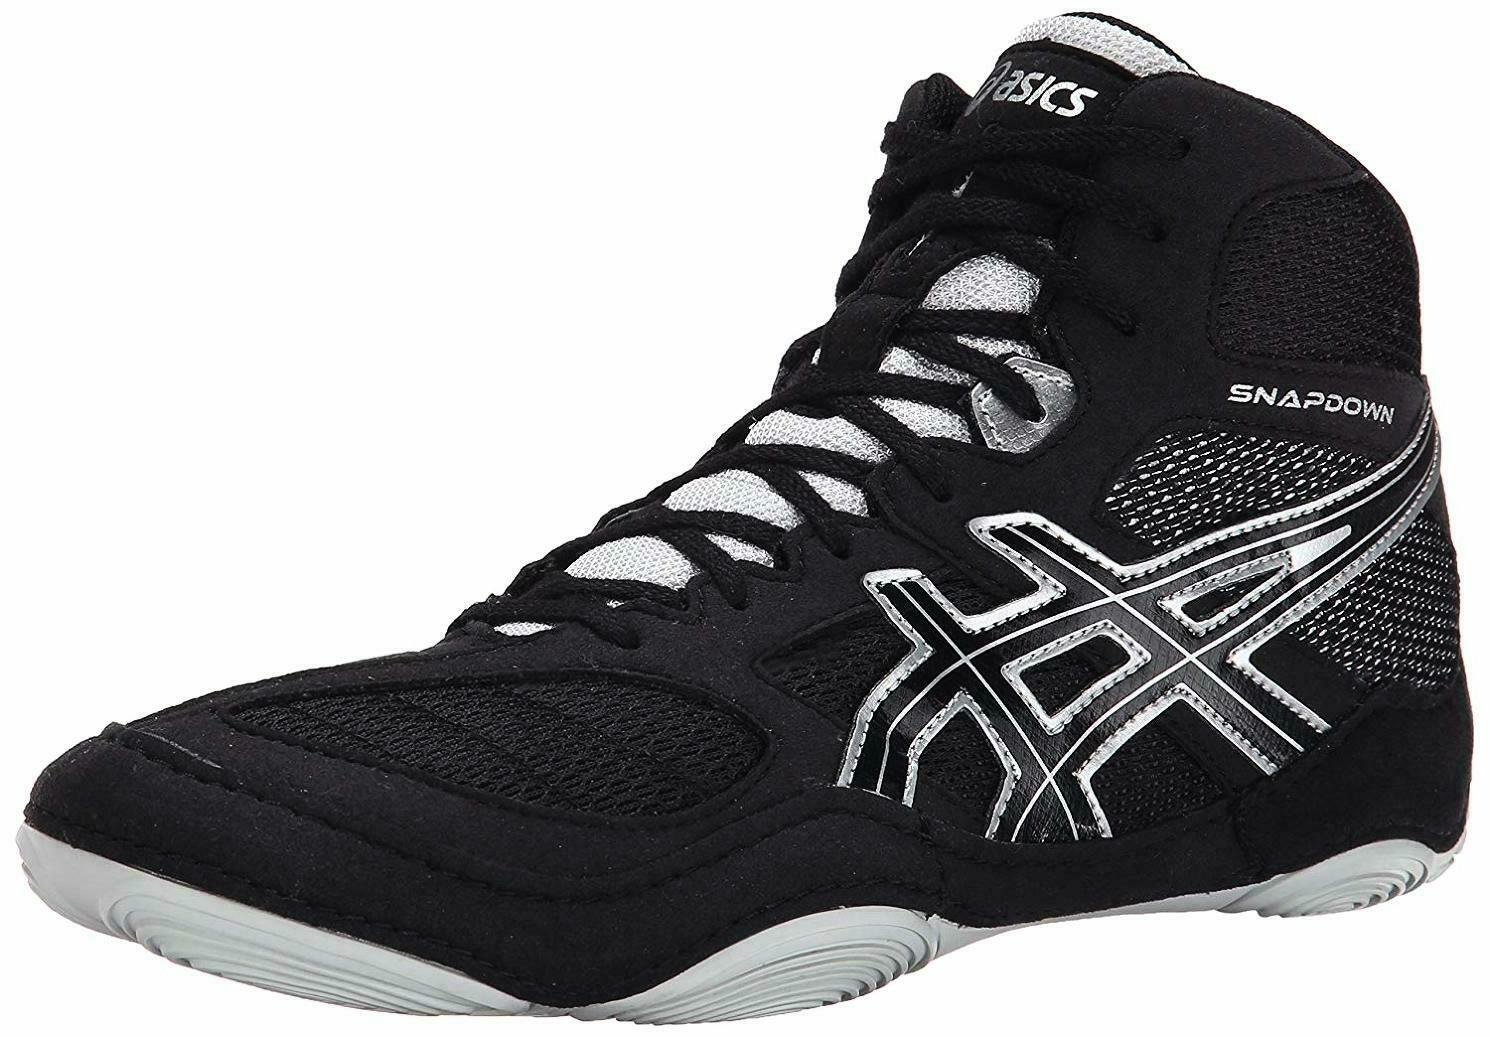 Homme ASICS Snapdown Wrestling chaussures-Choisir Taille Couleur